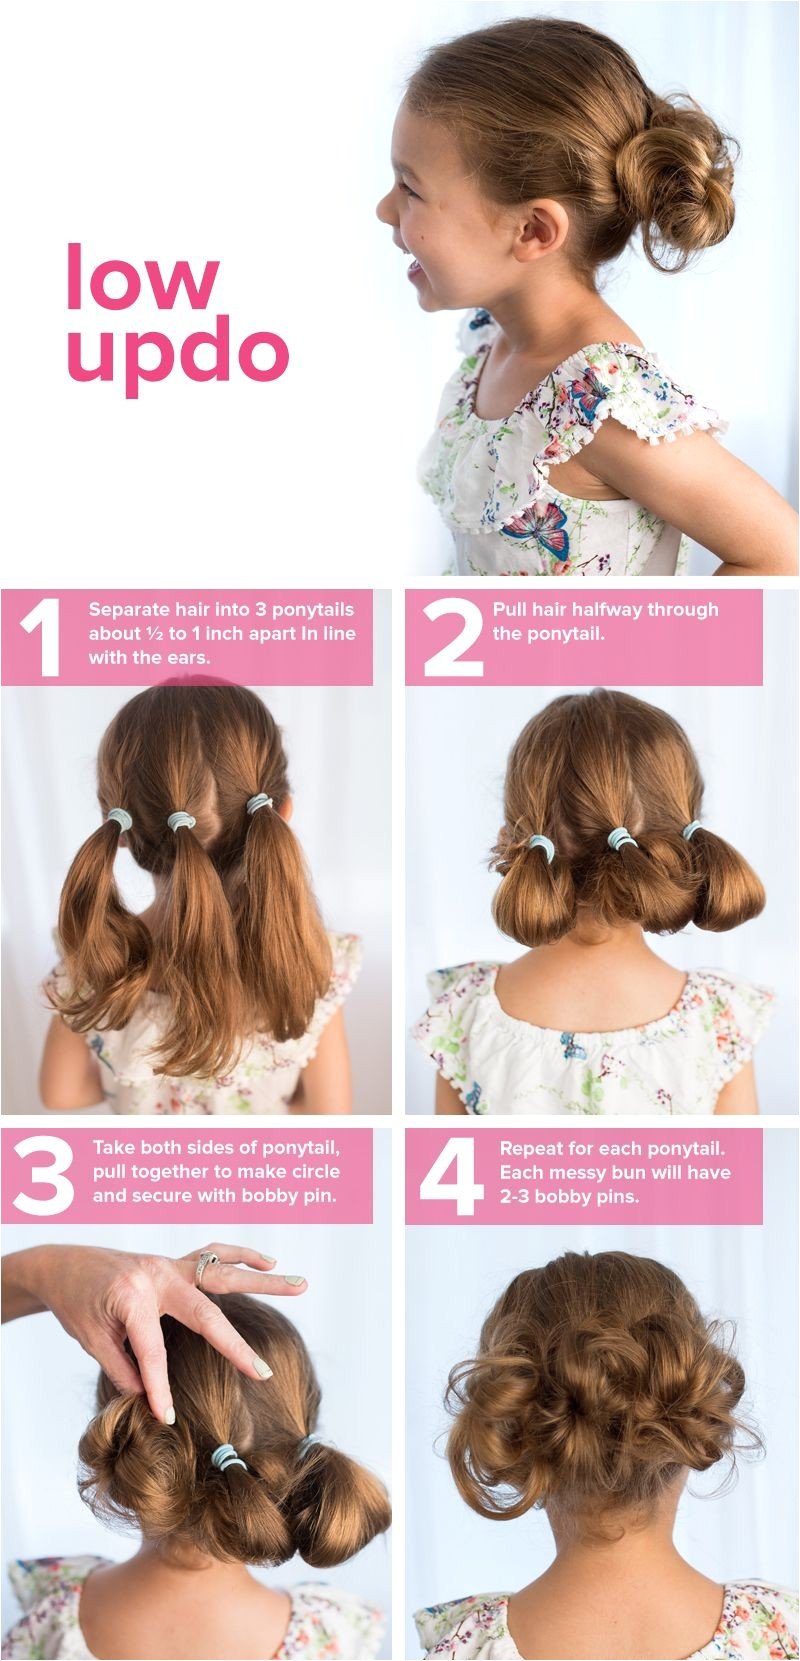 Different Hairstyles for Girls for School New 5 Fast Easy Cute Hairstyles for Girls Back to